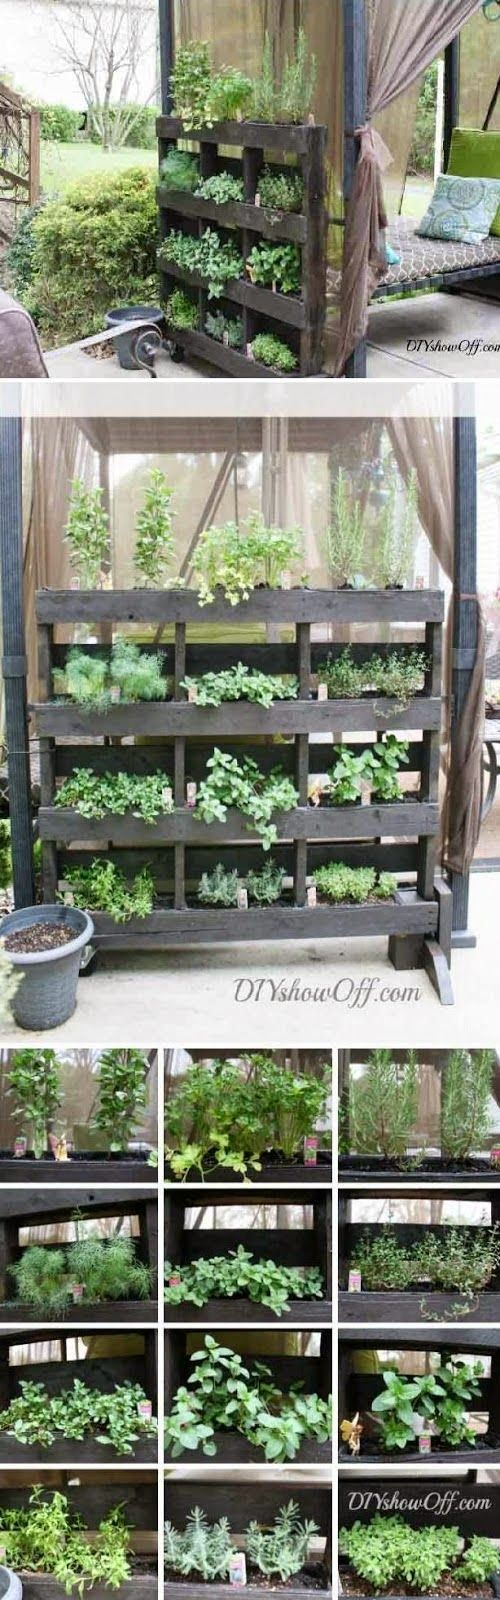 Our vegetable garden is located a few acres from the house. Wanting to have a small herb garden closer to the patio, grill and kitche...